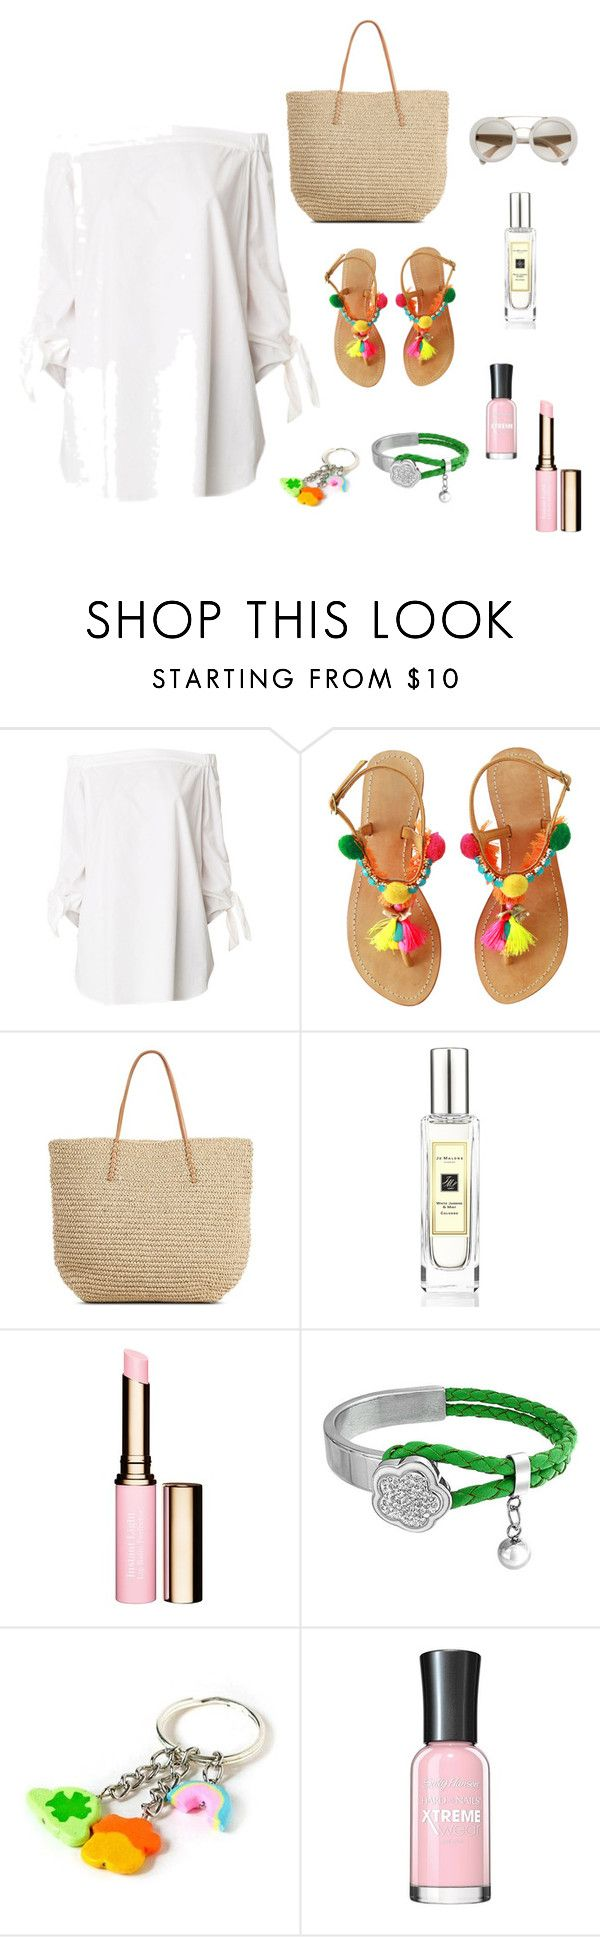 Off shoulder by janka-dzurillova on Polyvore featuring TIBI, Target, Bling Jewelry, Clarins and Jo Malone